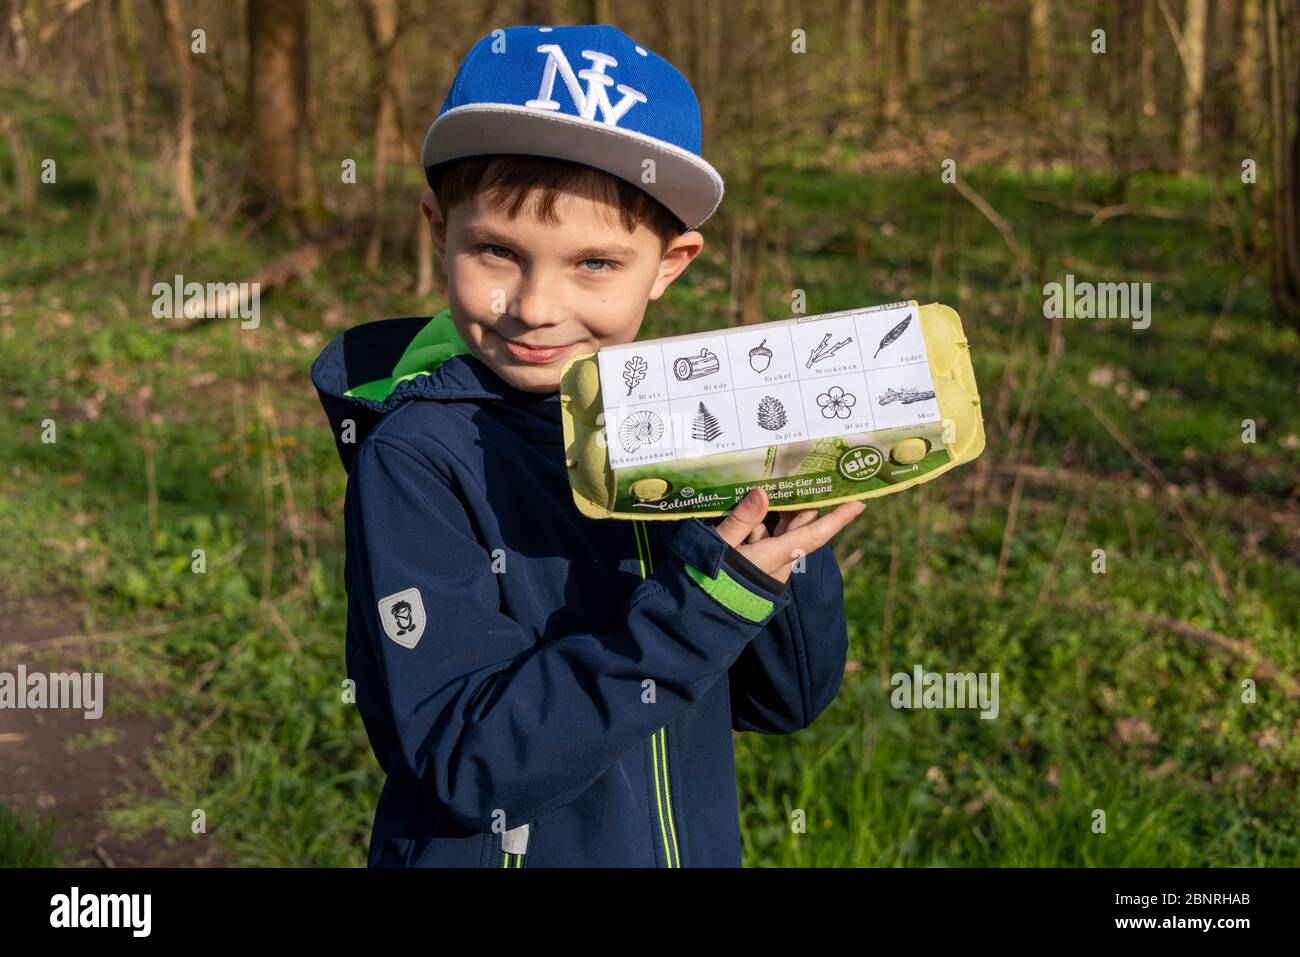 Boy is standing in the forest, holding egg packaging in his hand, a forest game to search for leaves, ferns, mosses, feathers and small branches. Game idea in times of Corona. Stock Photo